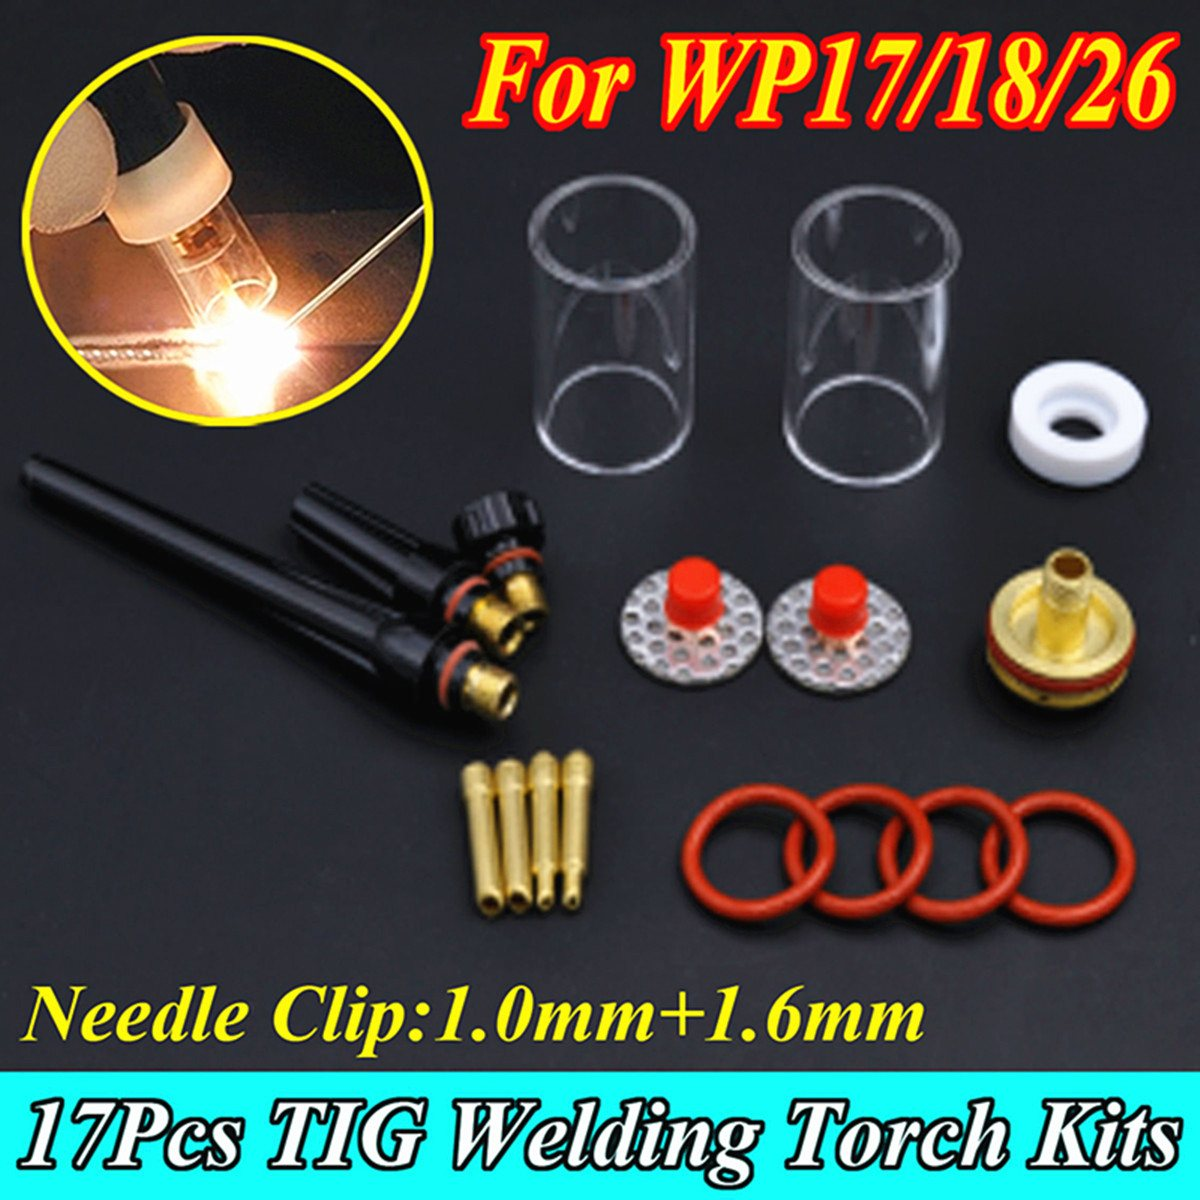 New 17Pcs TIG Welding Torch Stubby Collet Gas Lens Glass Nozzle Pryex Cup Kit with Heat-Resistant O-rings For WP-17/18/26 Series 2015 sale gas burner wp 17v sr 17v tig welding torch complete 20feet 6meter soldering iron gas valve control air cooled 150amp